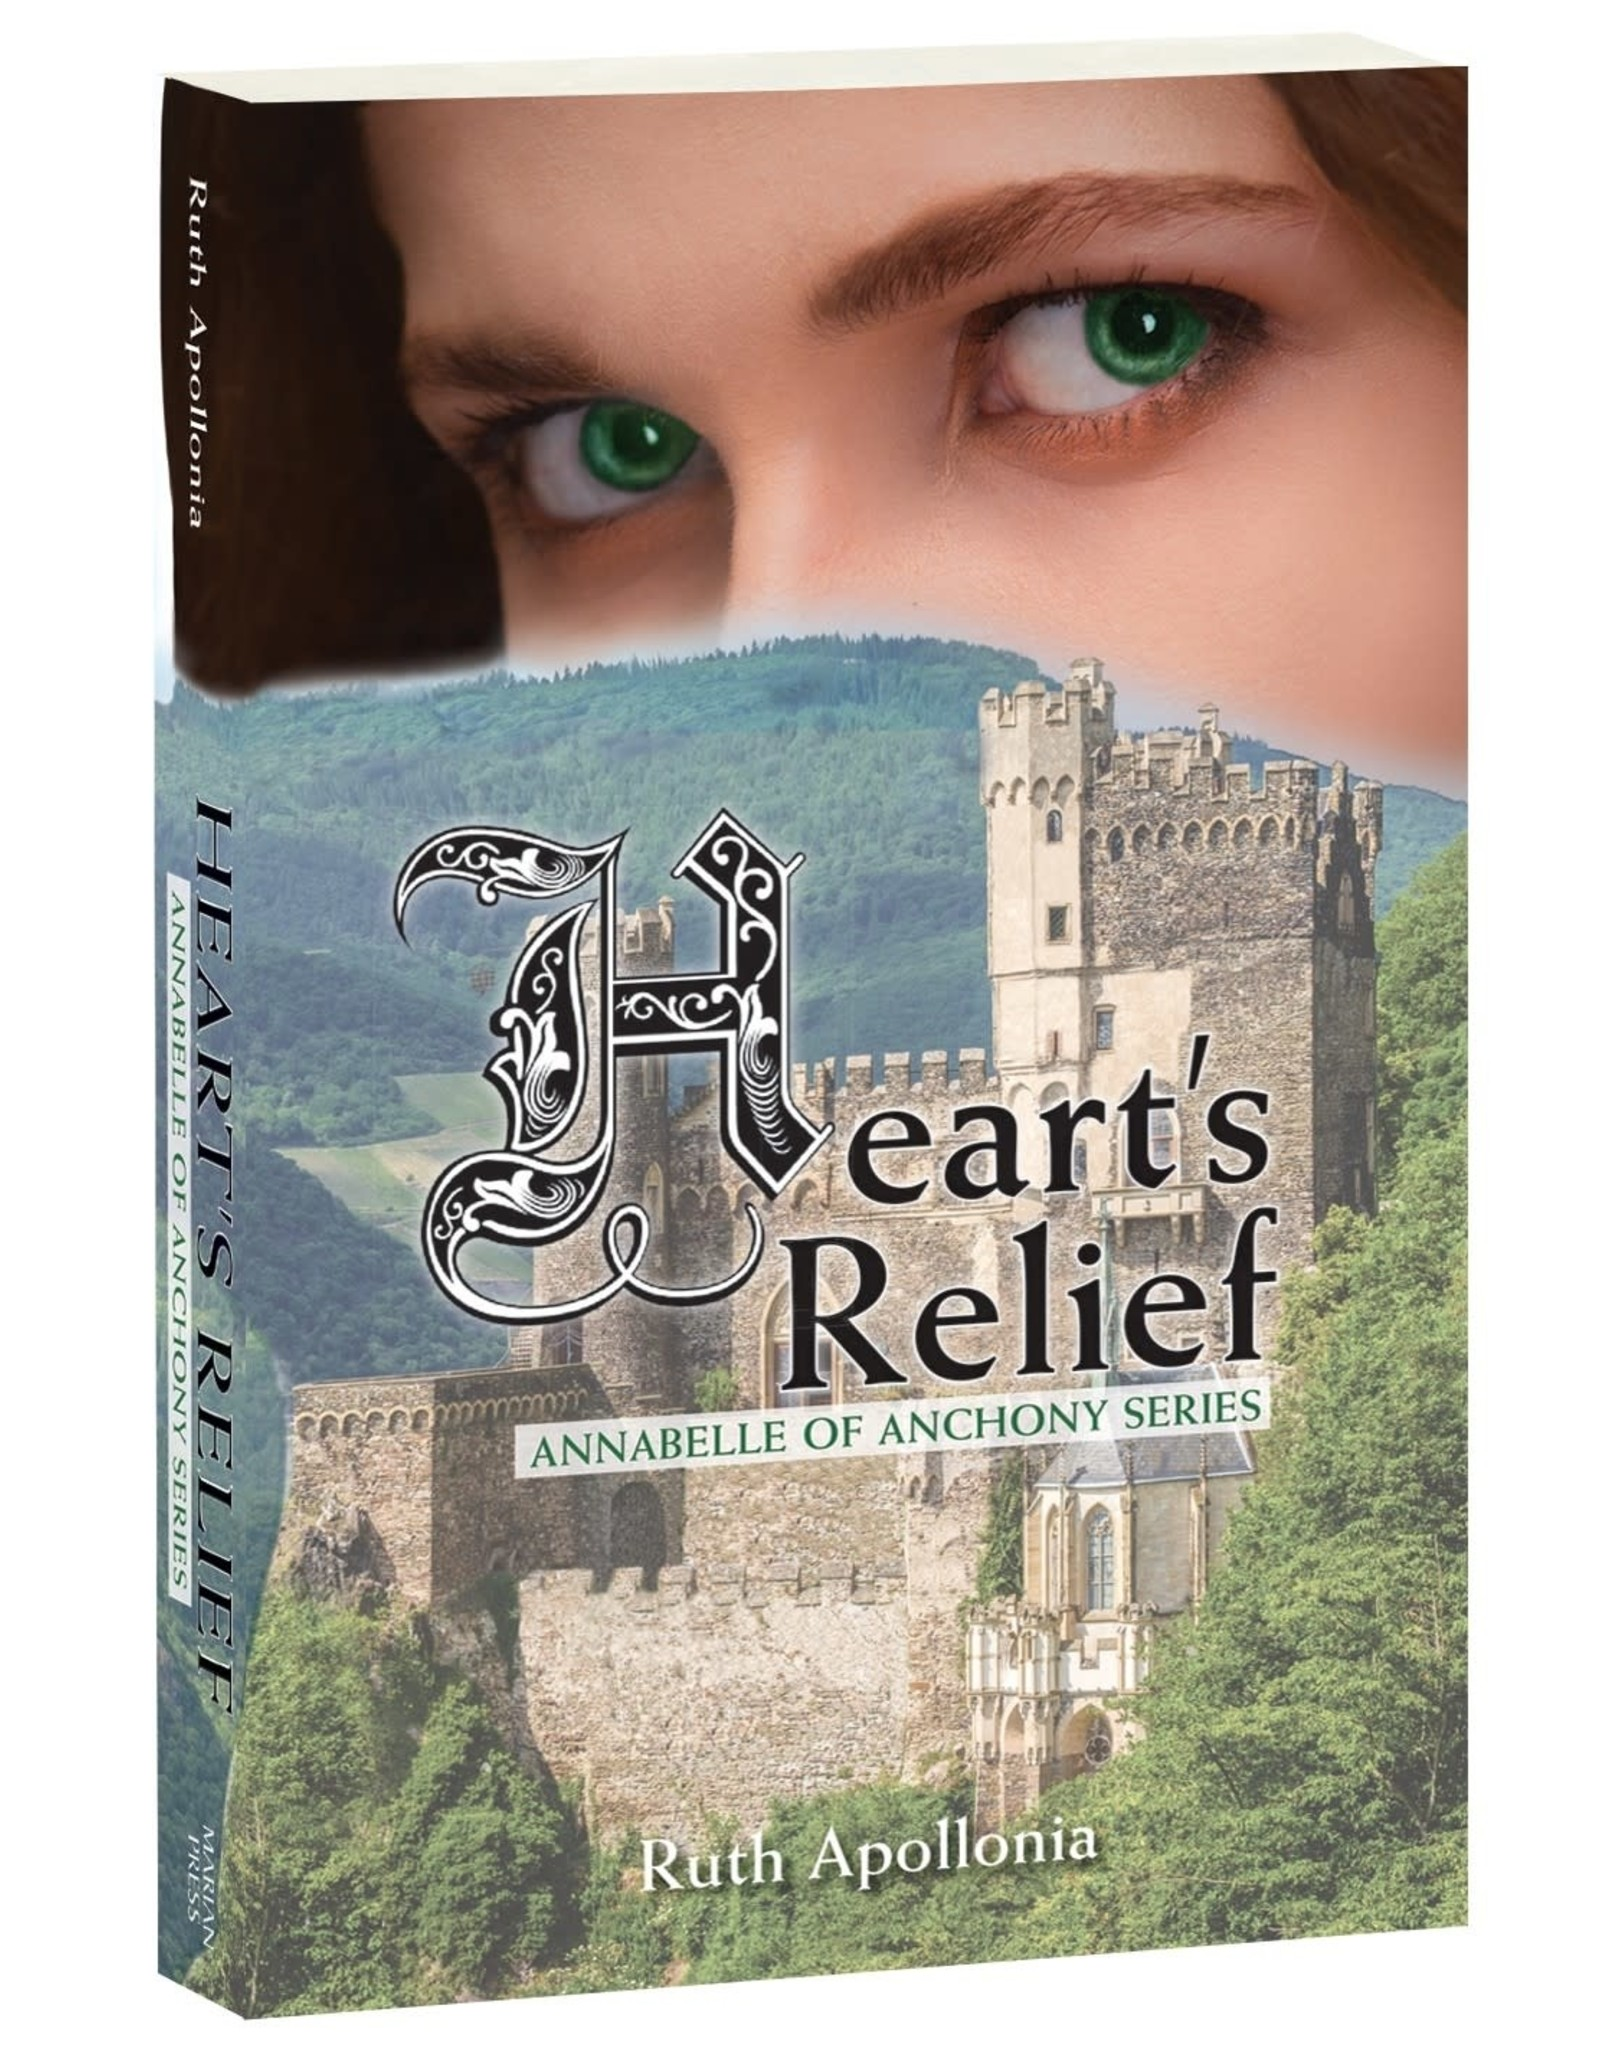 Heart's Relief - Annabelle of Anchony Series